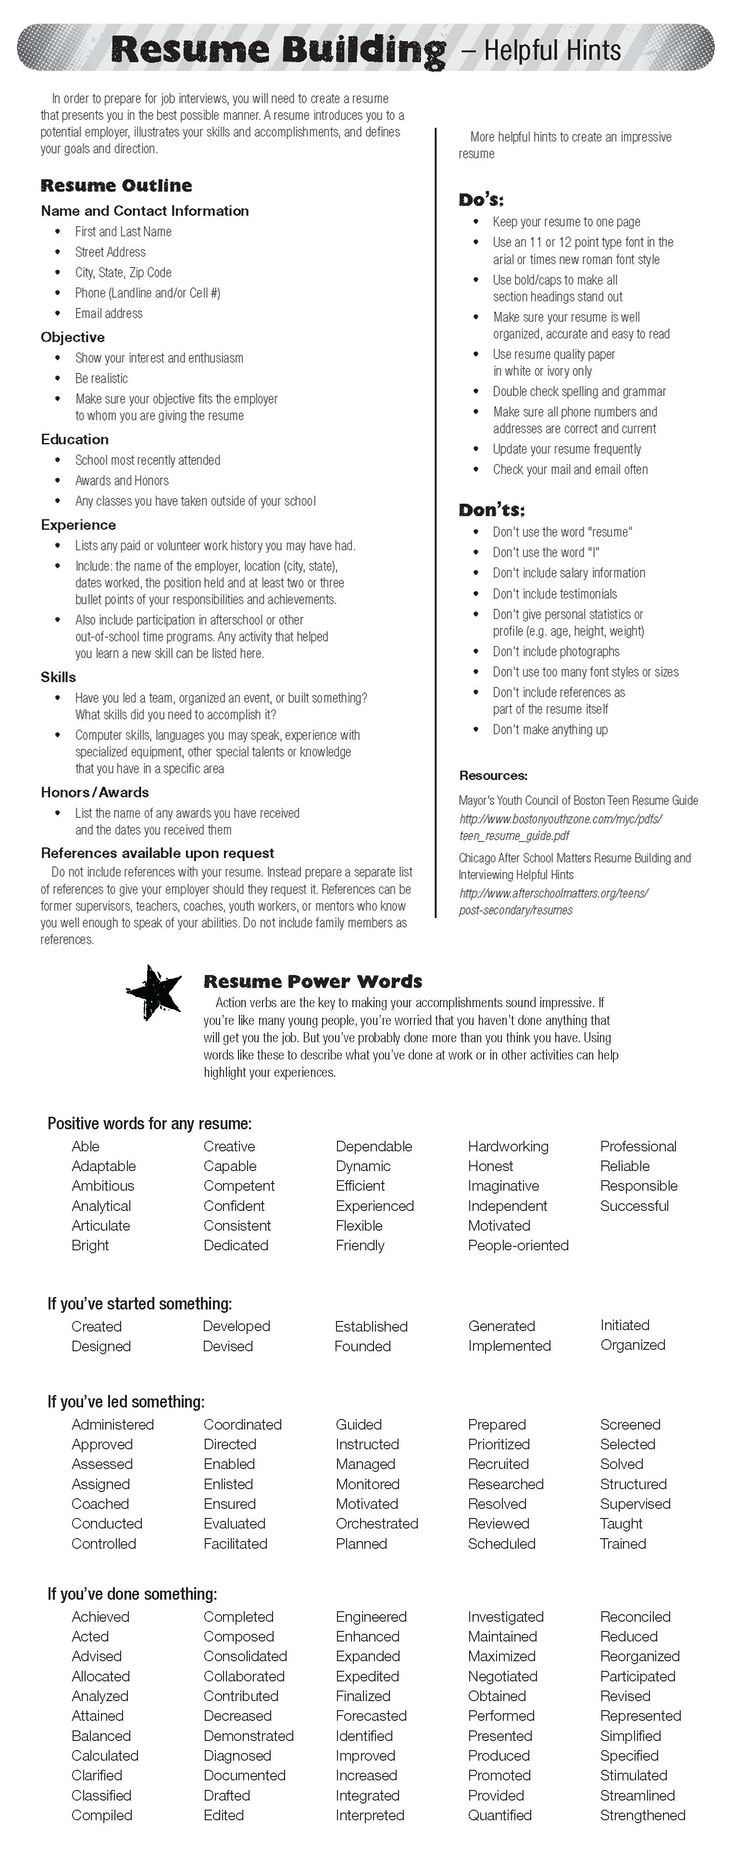 Picnictoimpeachus  Remarkable  Ideas About Resume On Pinterest  Cv Format Resume Cv And  With Magnificent  Ideas About Resume On Pinterest  Cv Format Resume Cv And Resume Templates With Enchanting How To Upload A Resume Also Sample Medical Assistant Resume In Addition Cna Resume Samples And Resume Layout Word As Well As Microsoft Resume Templates Free Additionally Summary Section Of Resume From Pinterestcom With Picnictoimpeachus  Magnificent  Ideas About Resume On Pinterest  Cv Format Resume Cv And  With Enchanting  Ideas About Resume On Pinterest  Cv Format Resume Cv And Resume Templates And Remarkable How To Upload A Resume Also Sample Medical Assistant Resume In Addition Cna Resume Samples From Pinterestcom